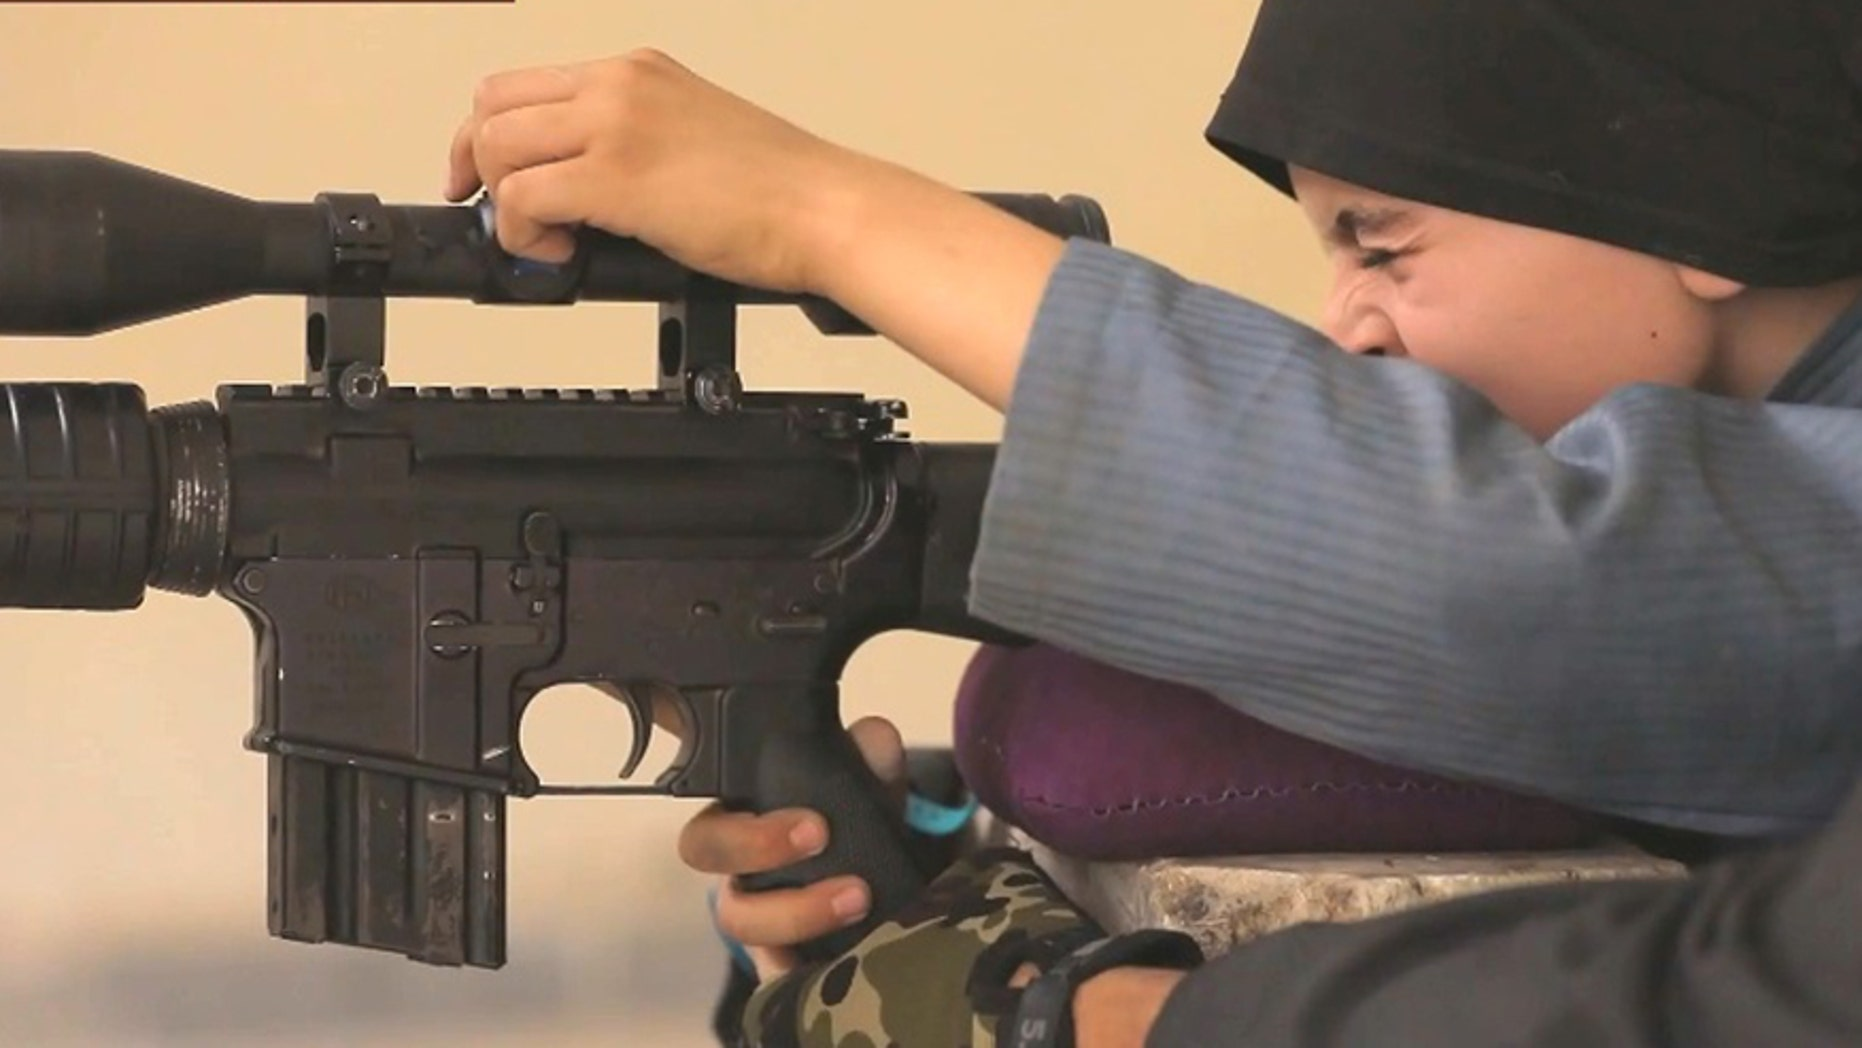 A boy claiming to be 10 years old and the son of American parents features in a new ISIS propaganda video.